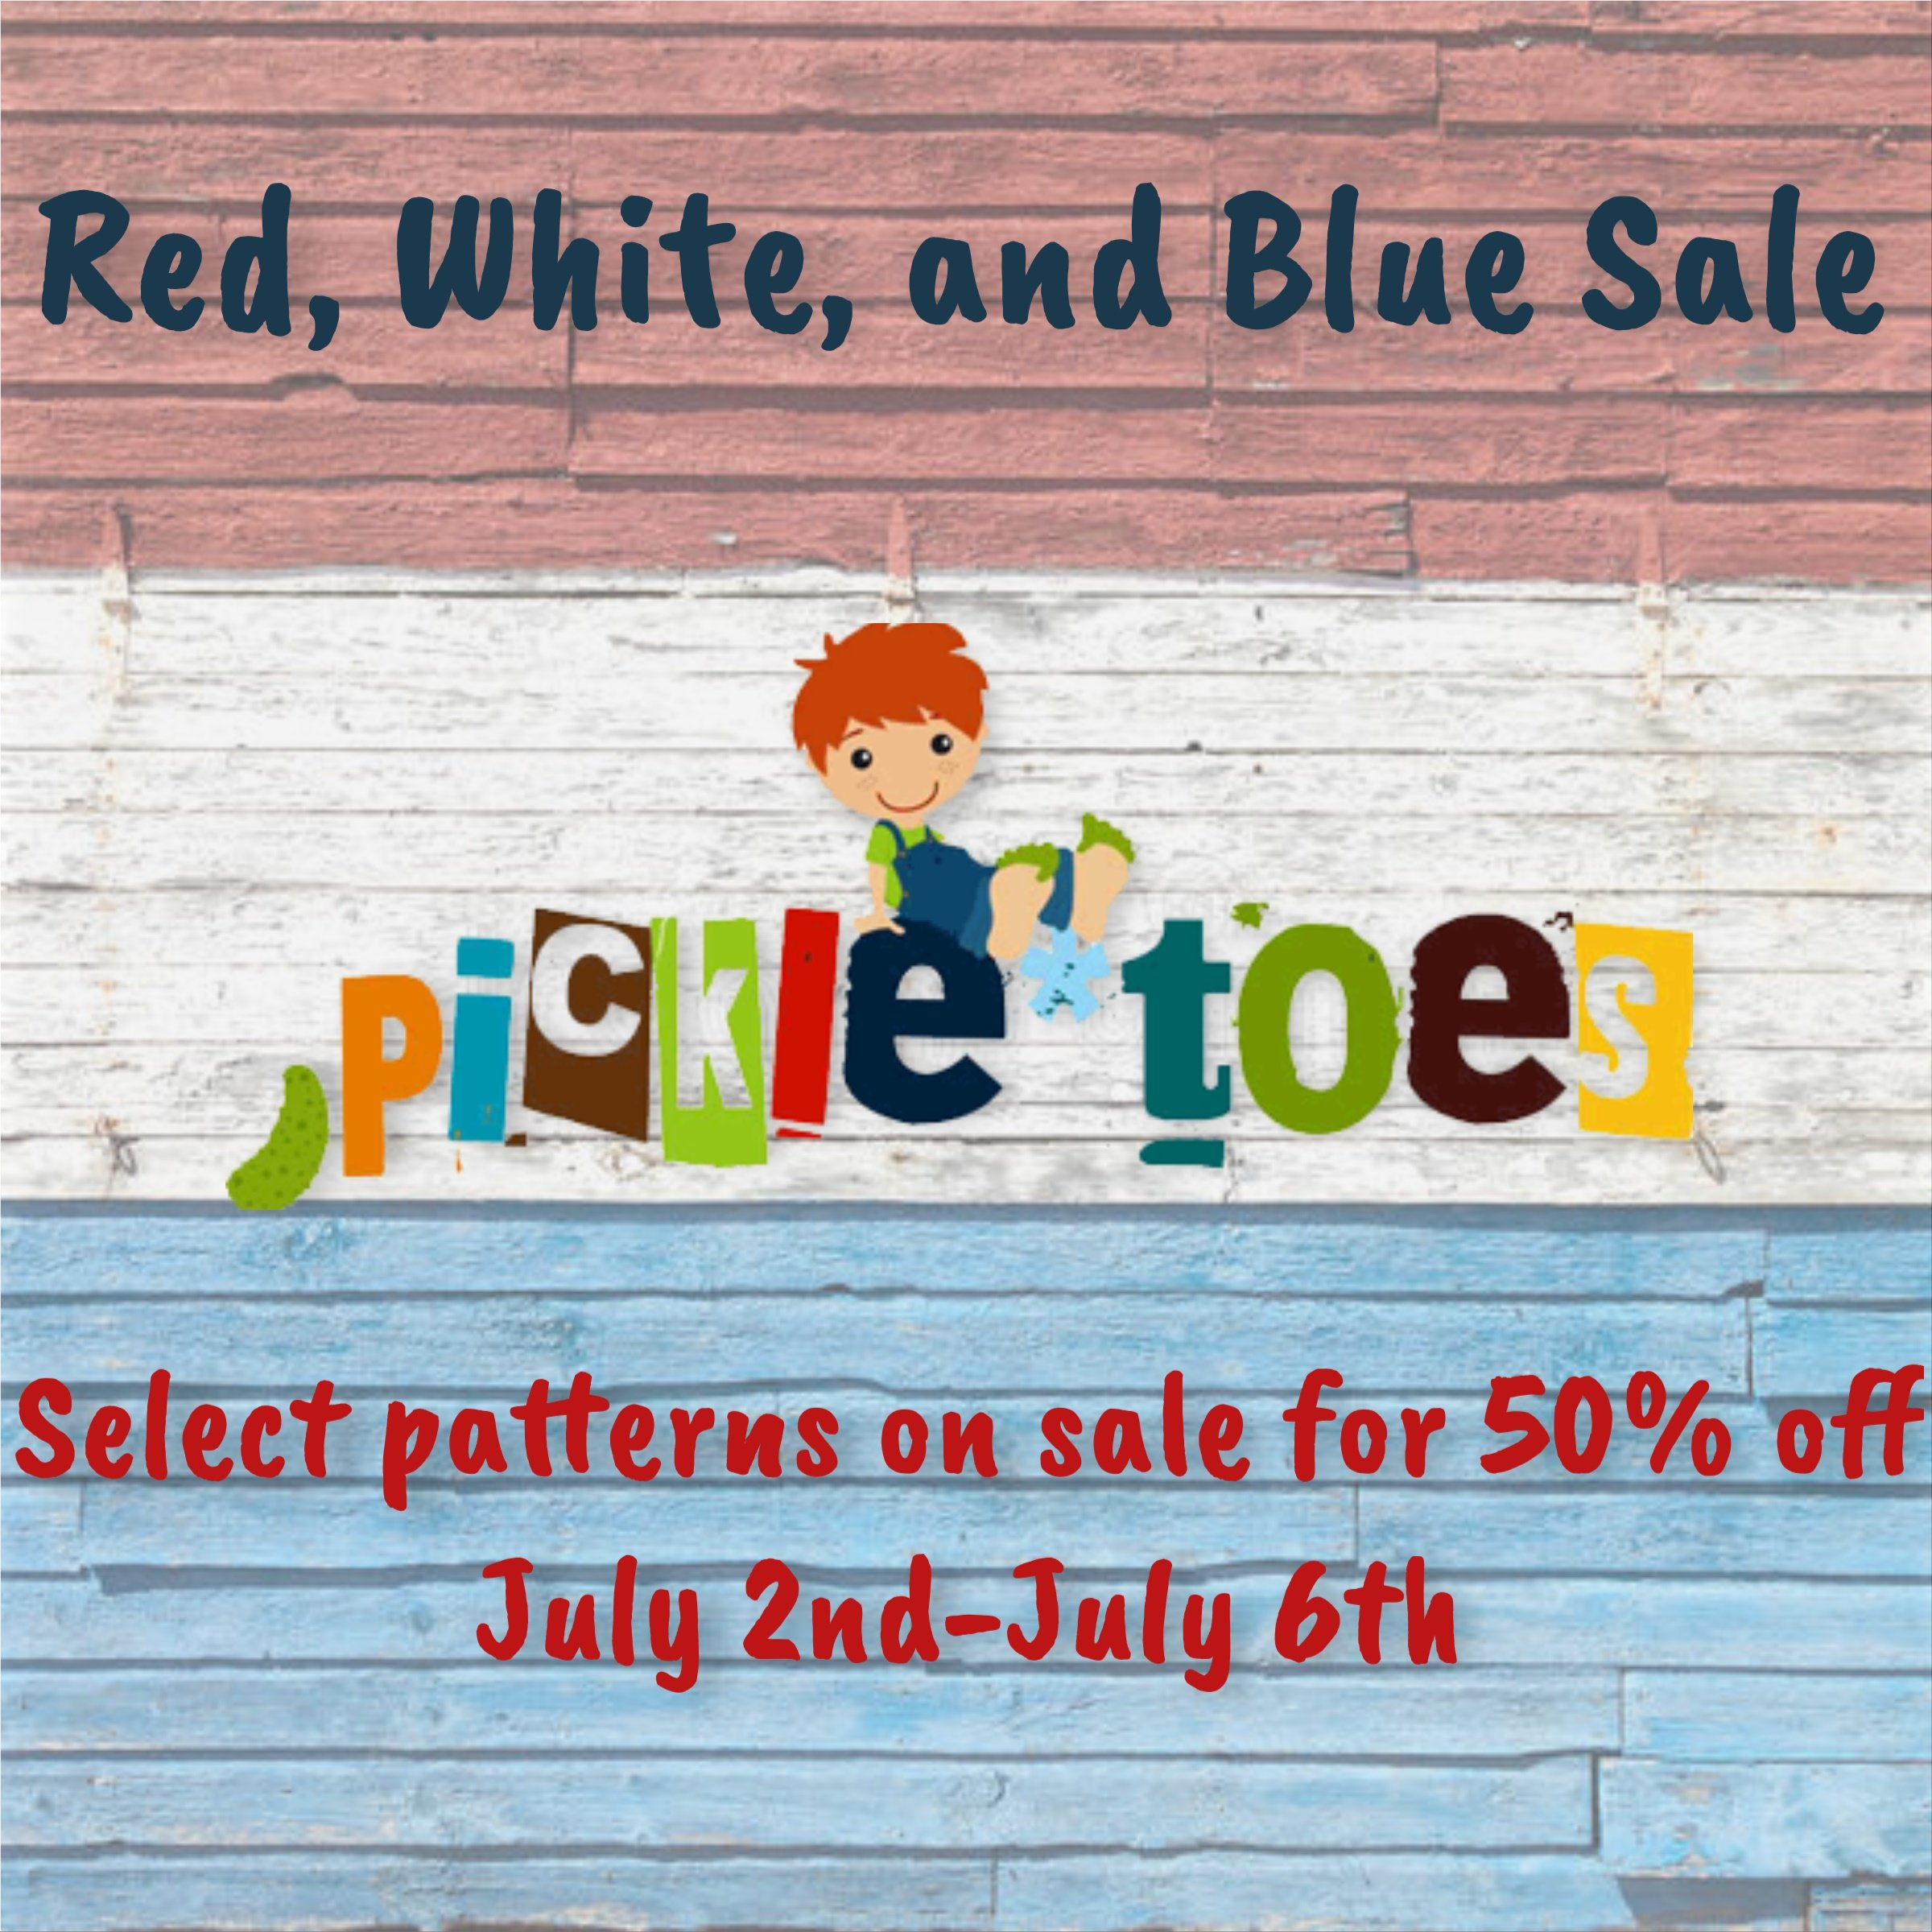 Pickle Toes Sewing Patterns Red White and Blue Sale